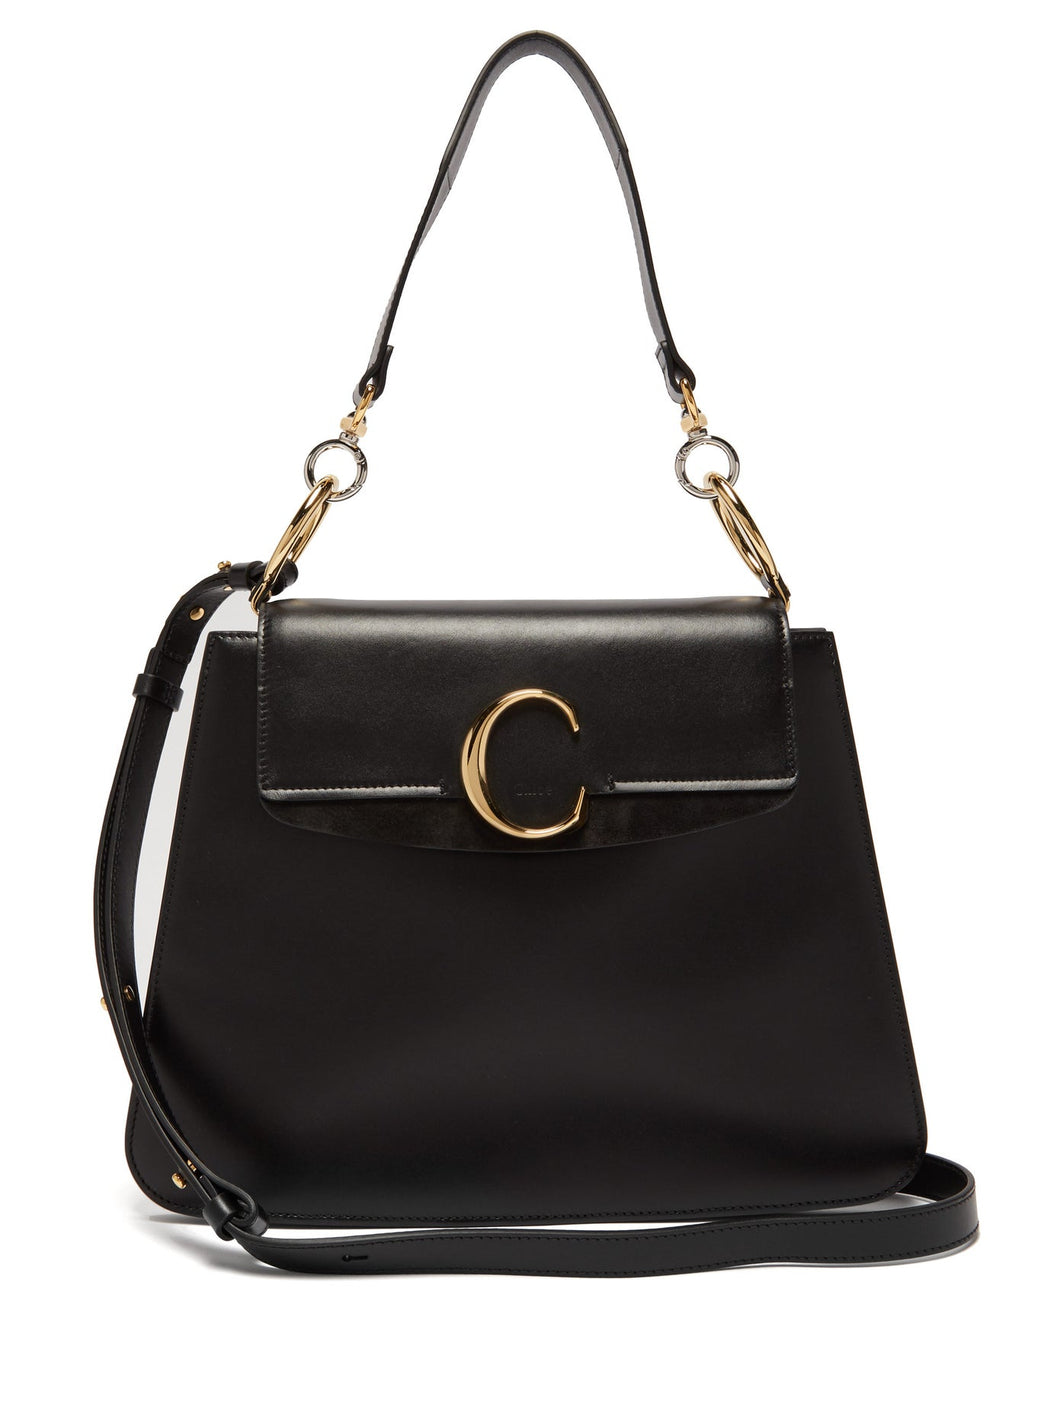 Medium The C leather shoulder bag